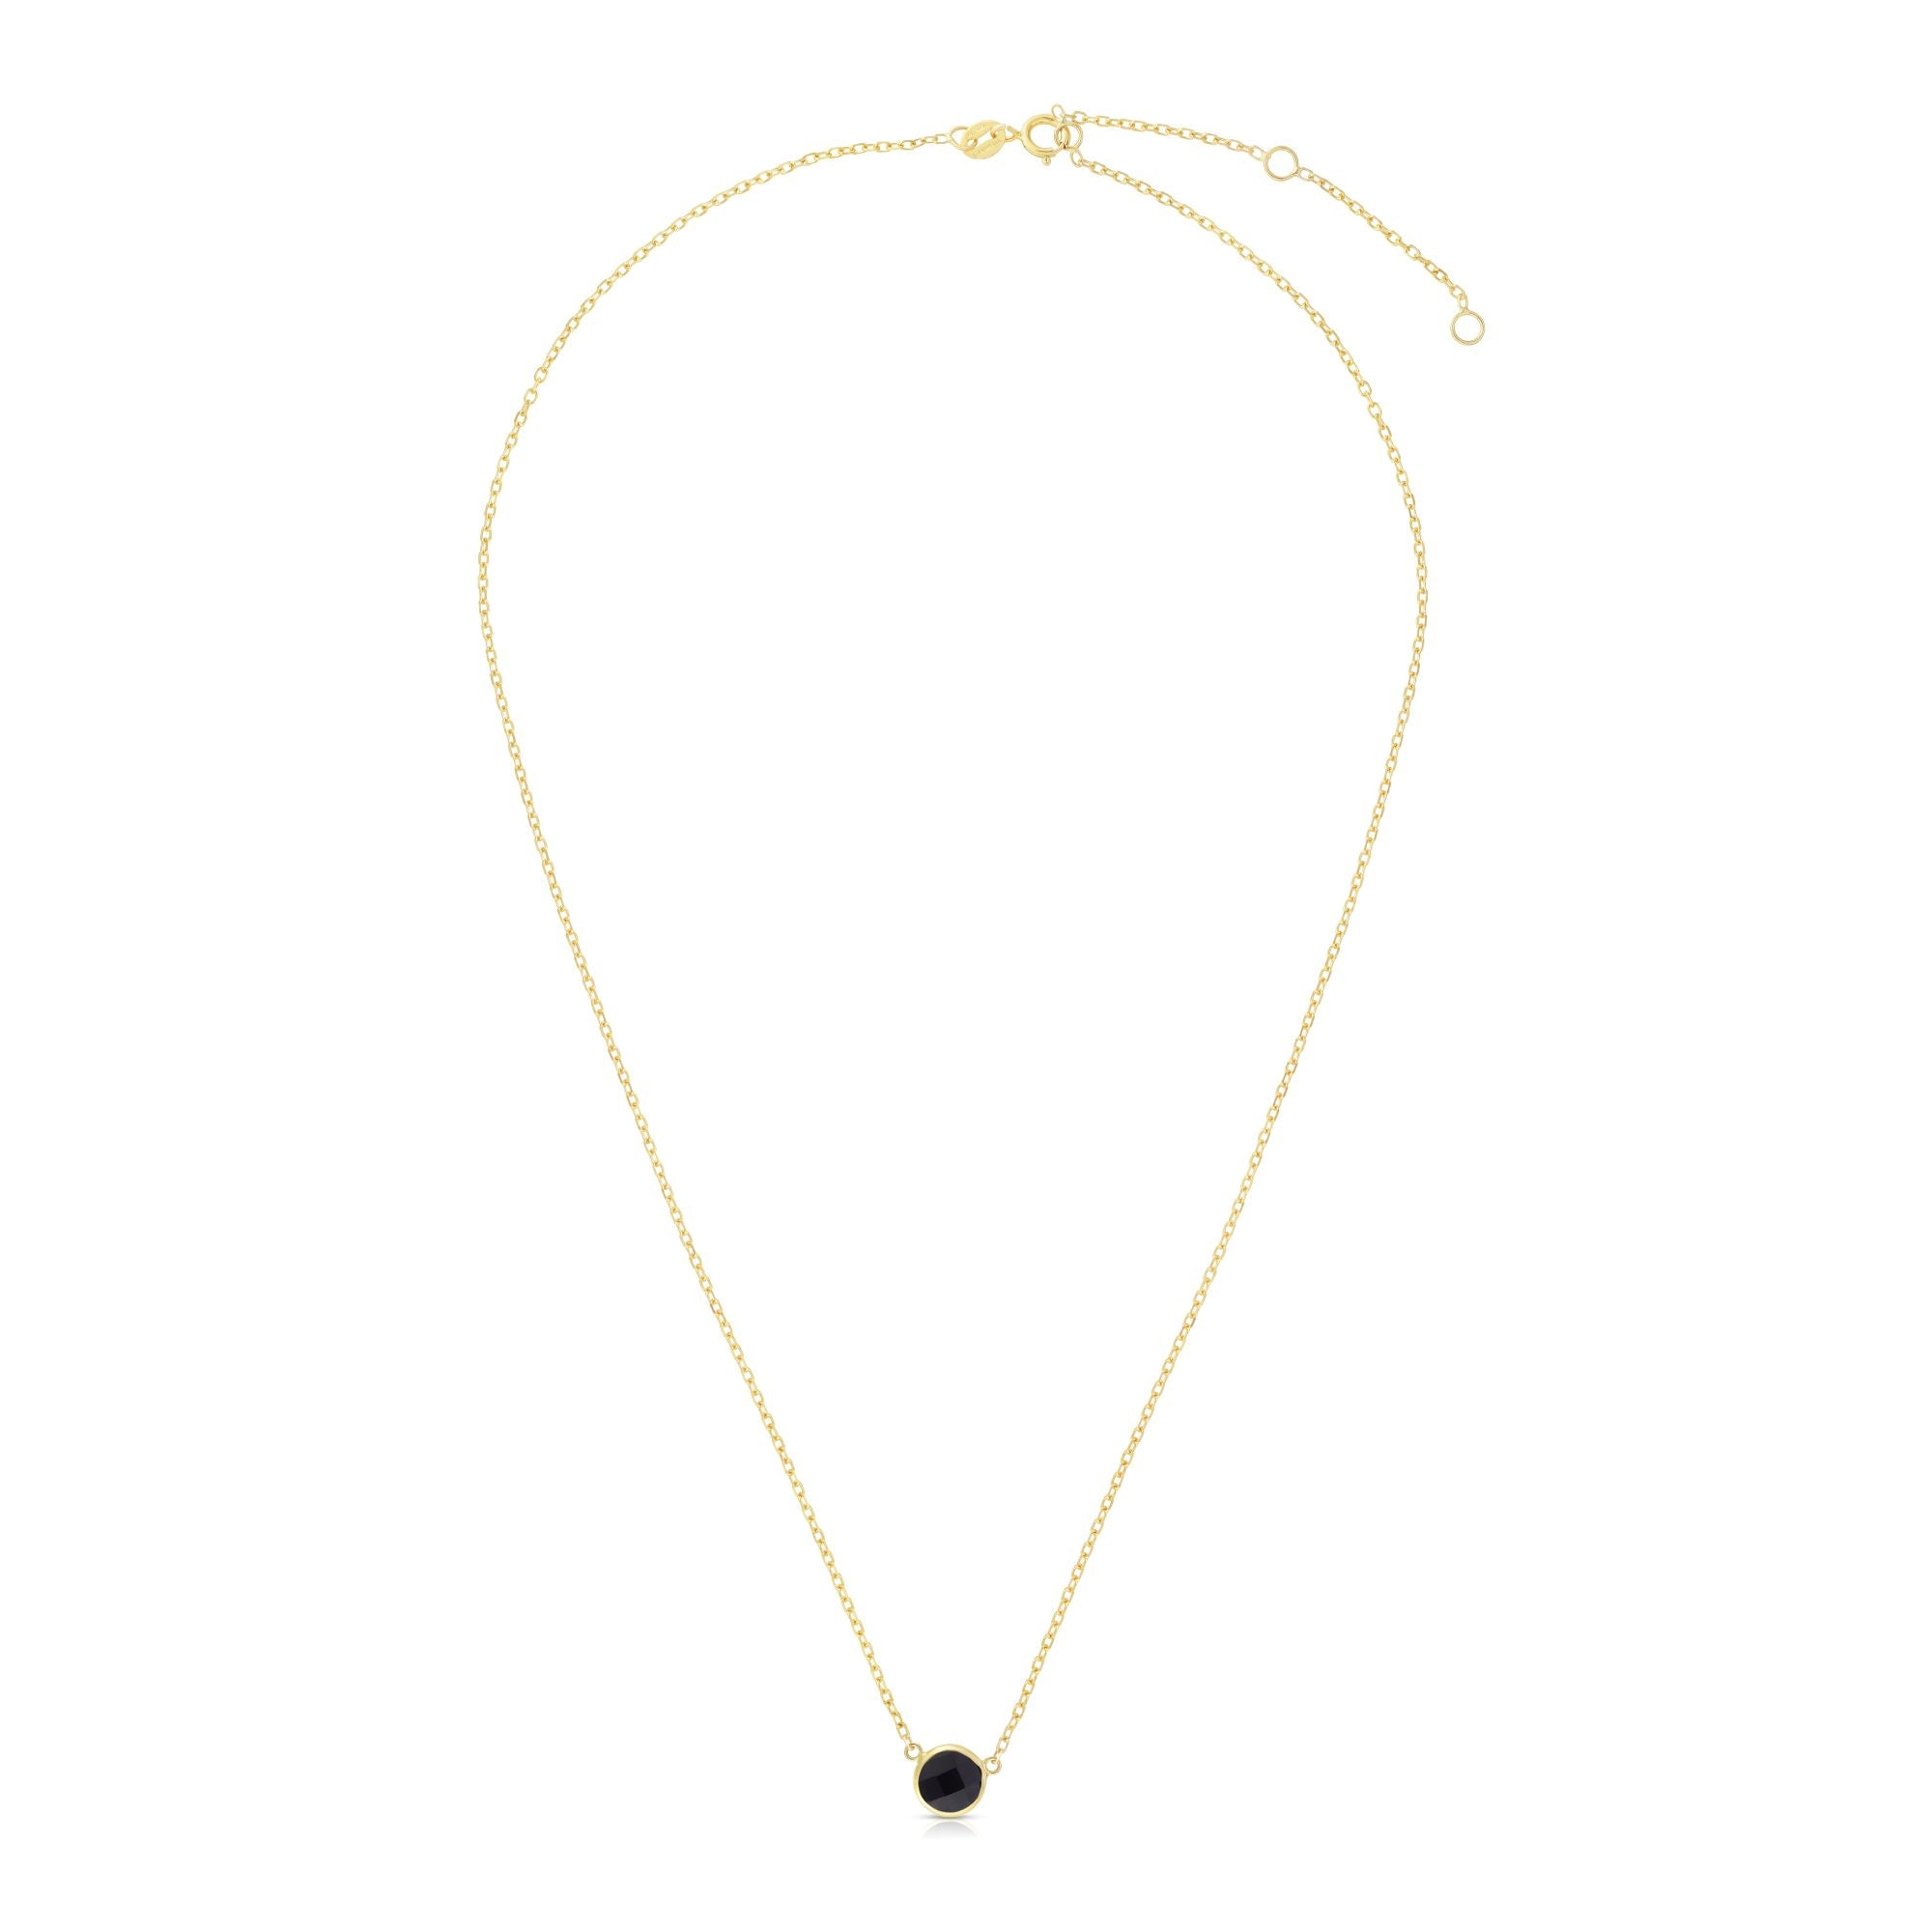 14K Gold & Onyx Solitaire Necklace